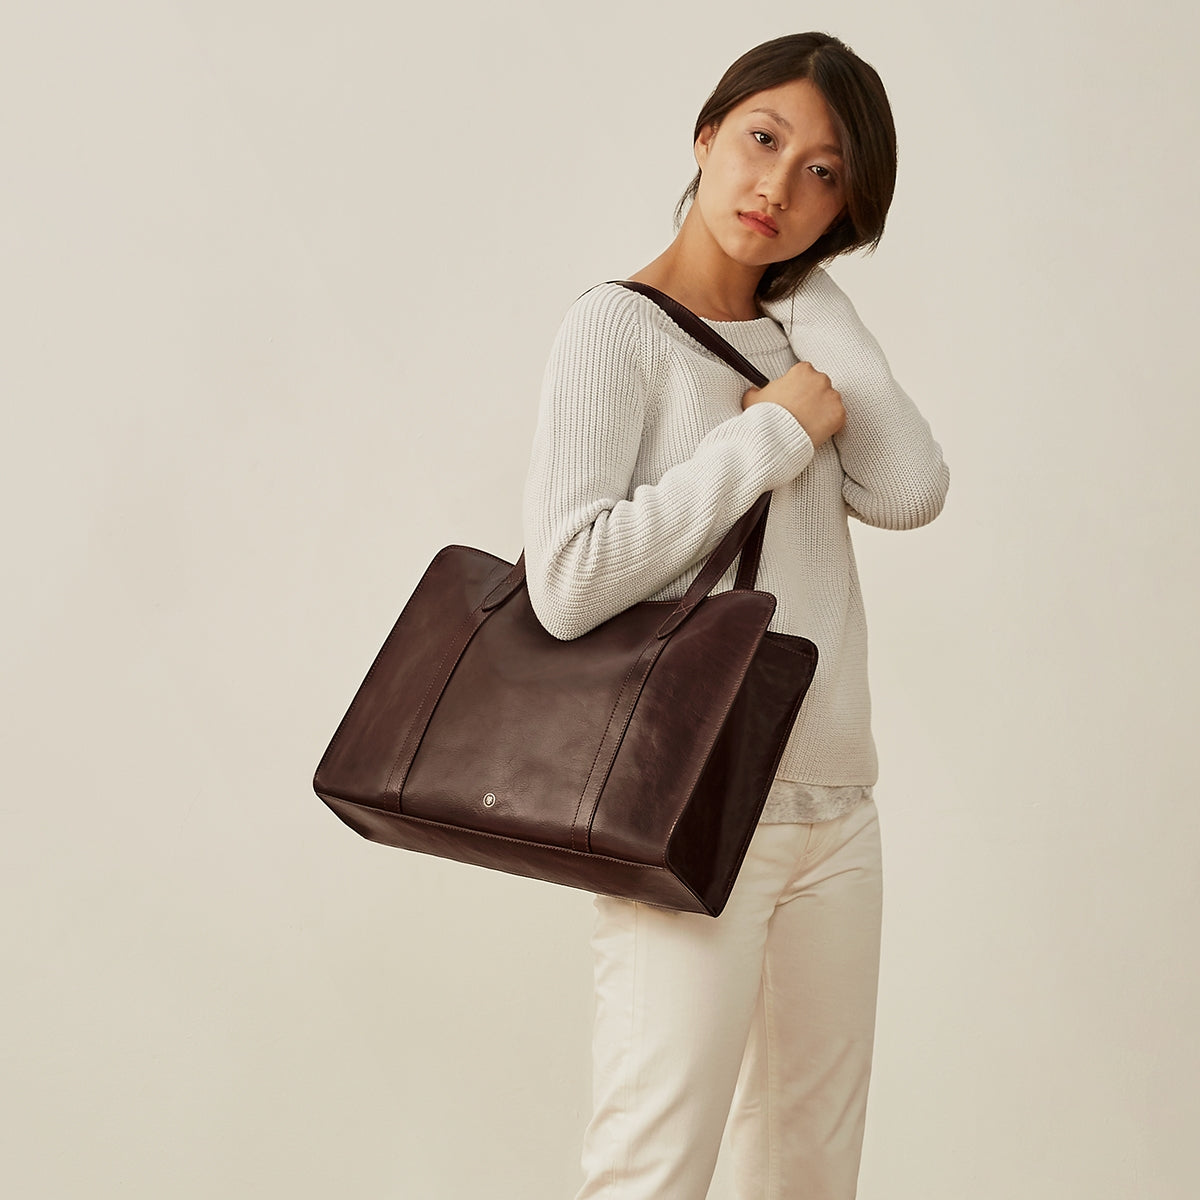 Image 7 of the 'Rivara' Large Dark Chocolate Veg-Tanned Leather Shoulder Bag